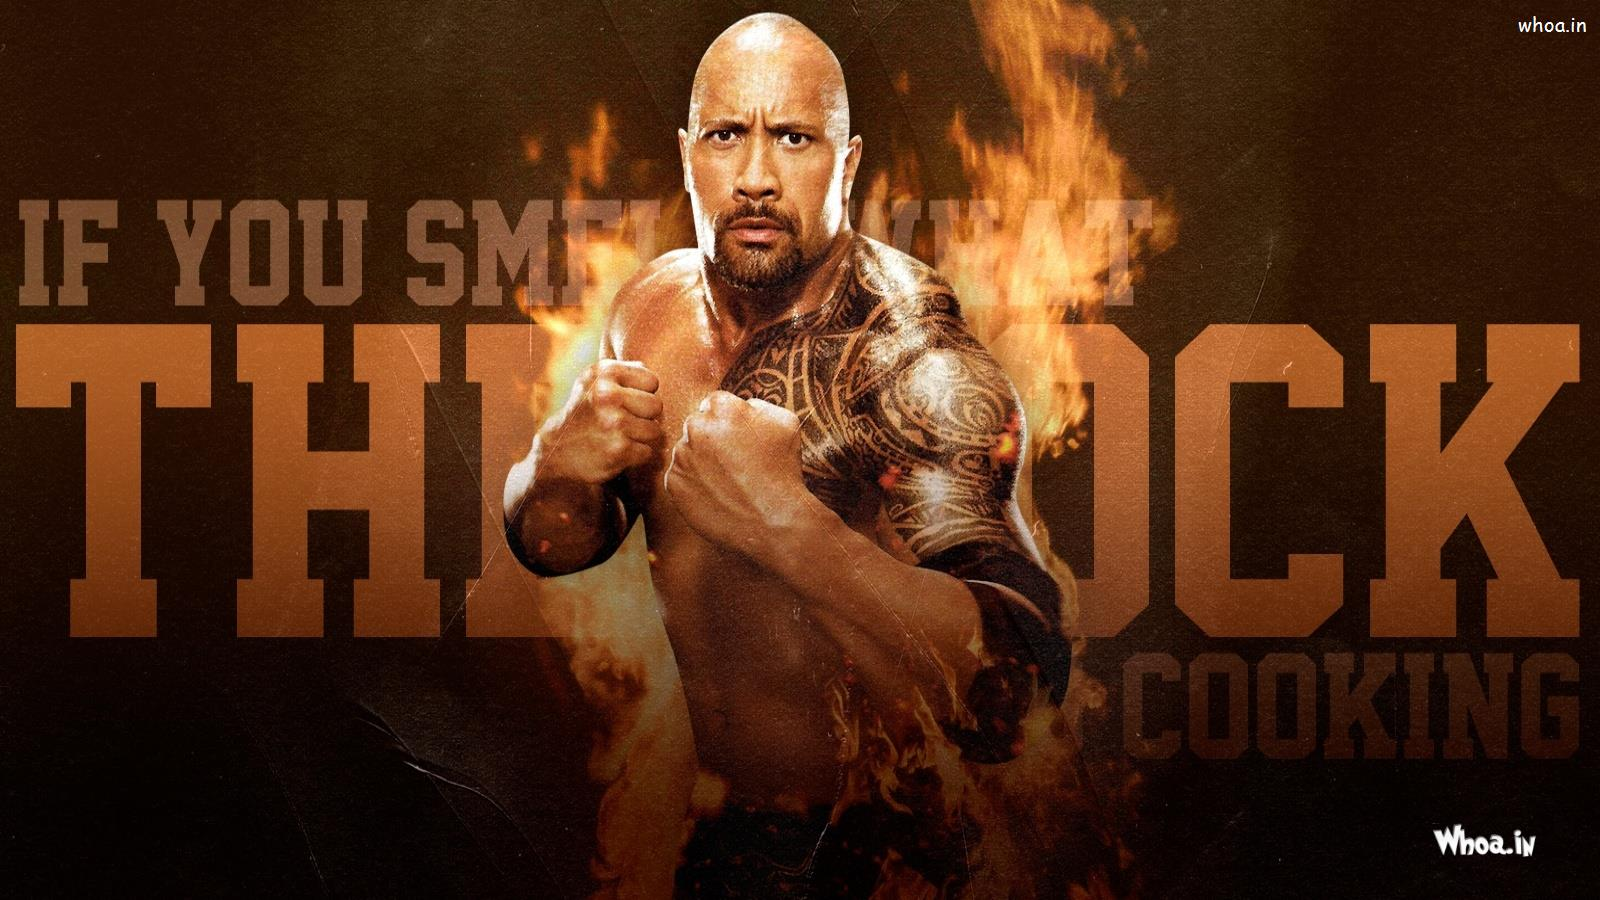 the rock fight with fire background hd wwe wallpaper